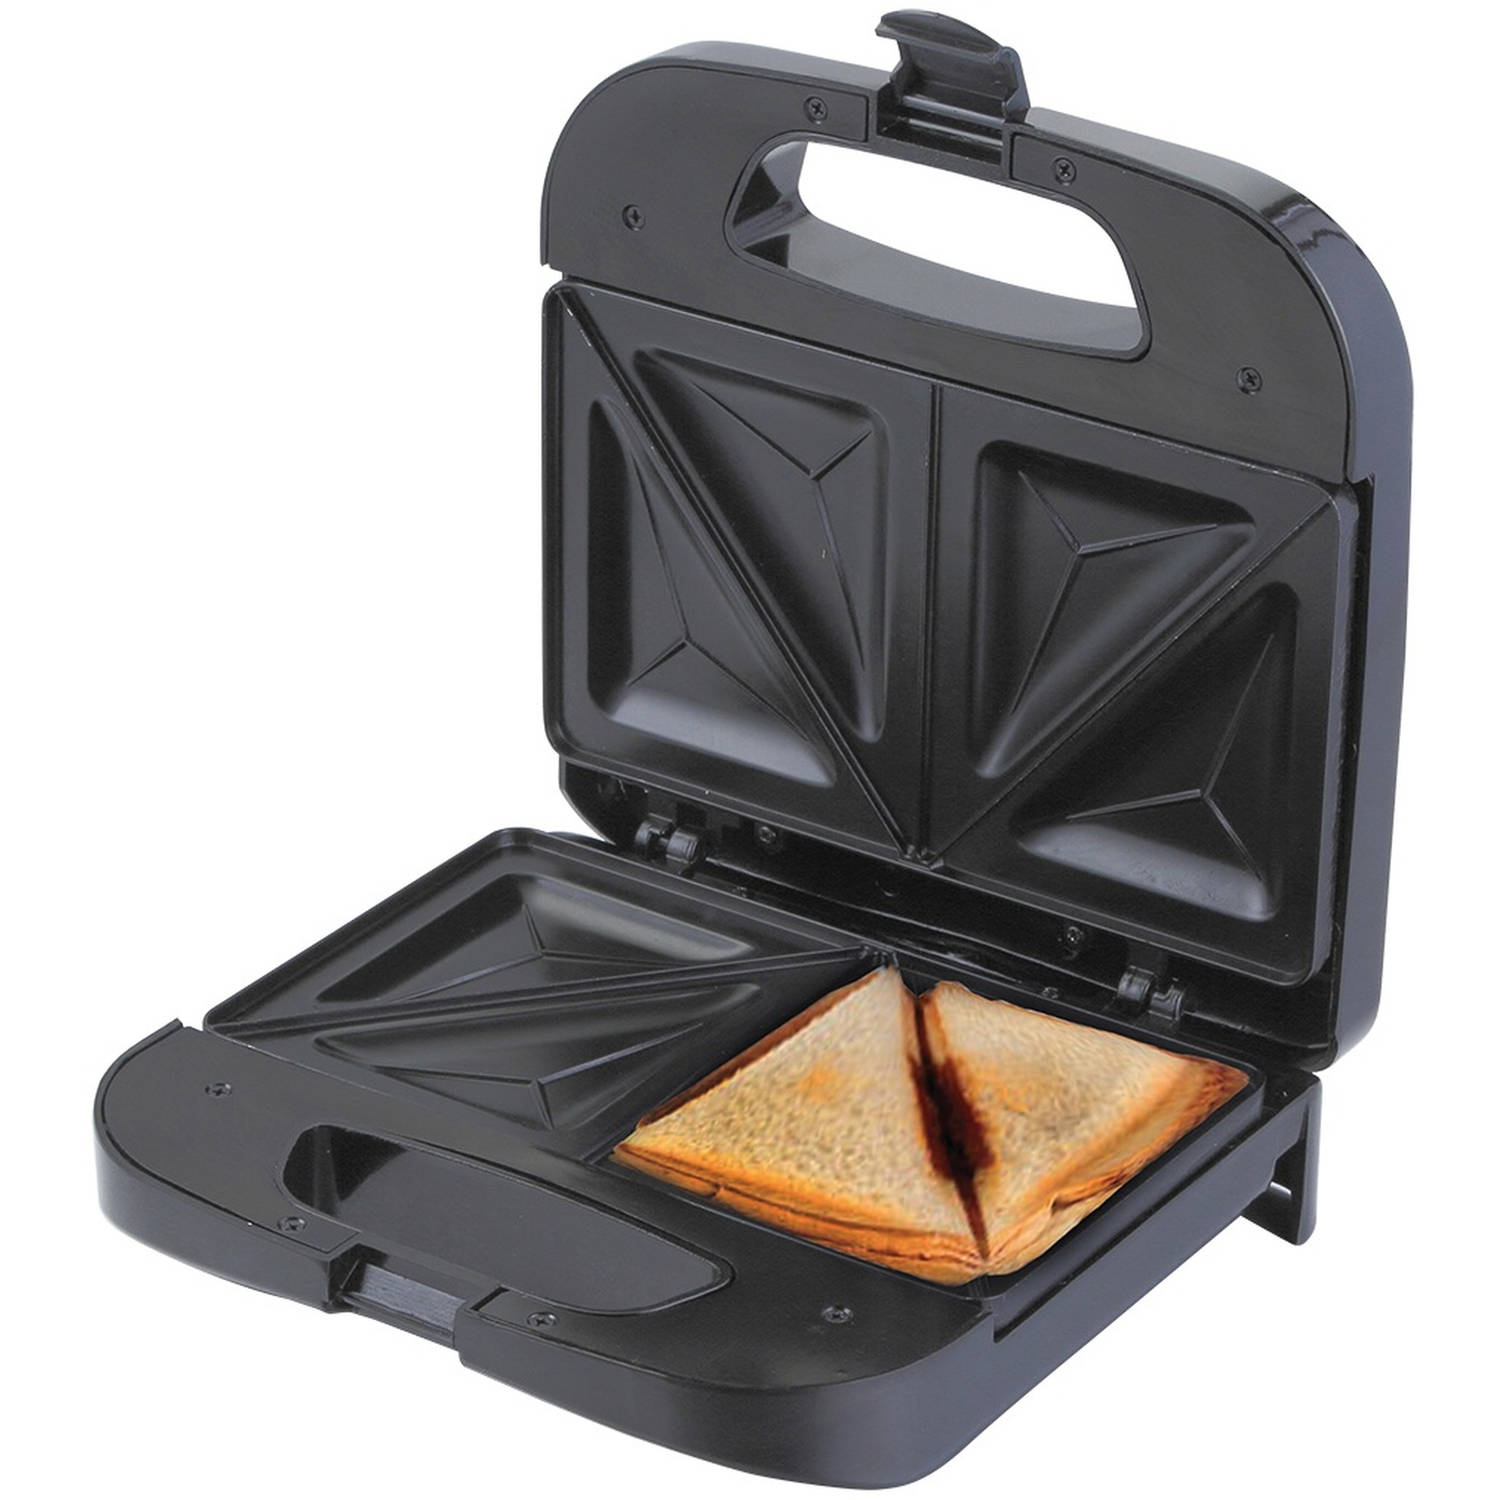 Chefman Sandwich Maker, Makes 2 Full Sandwiches with Deep Non-Stick Pockets Black